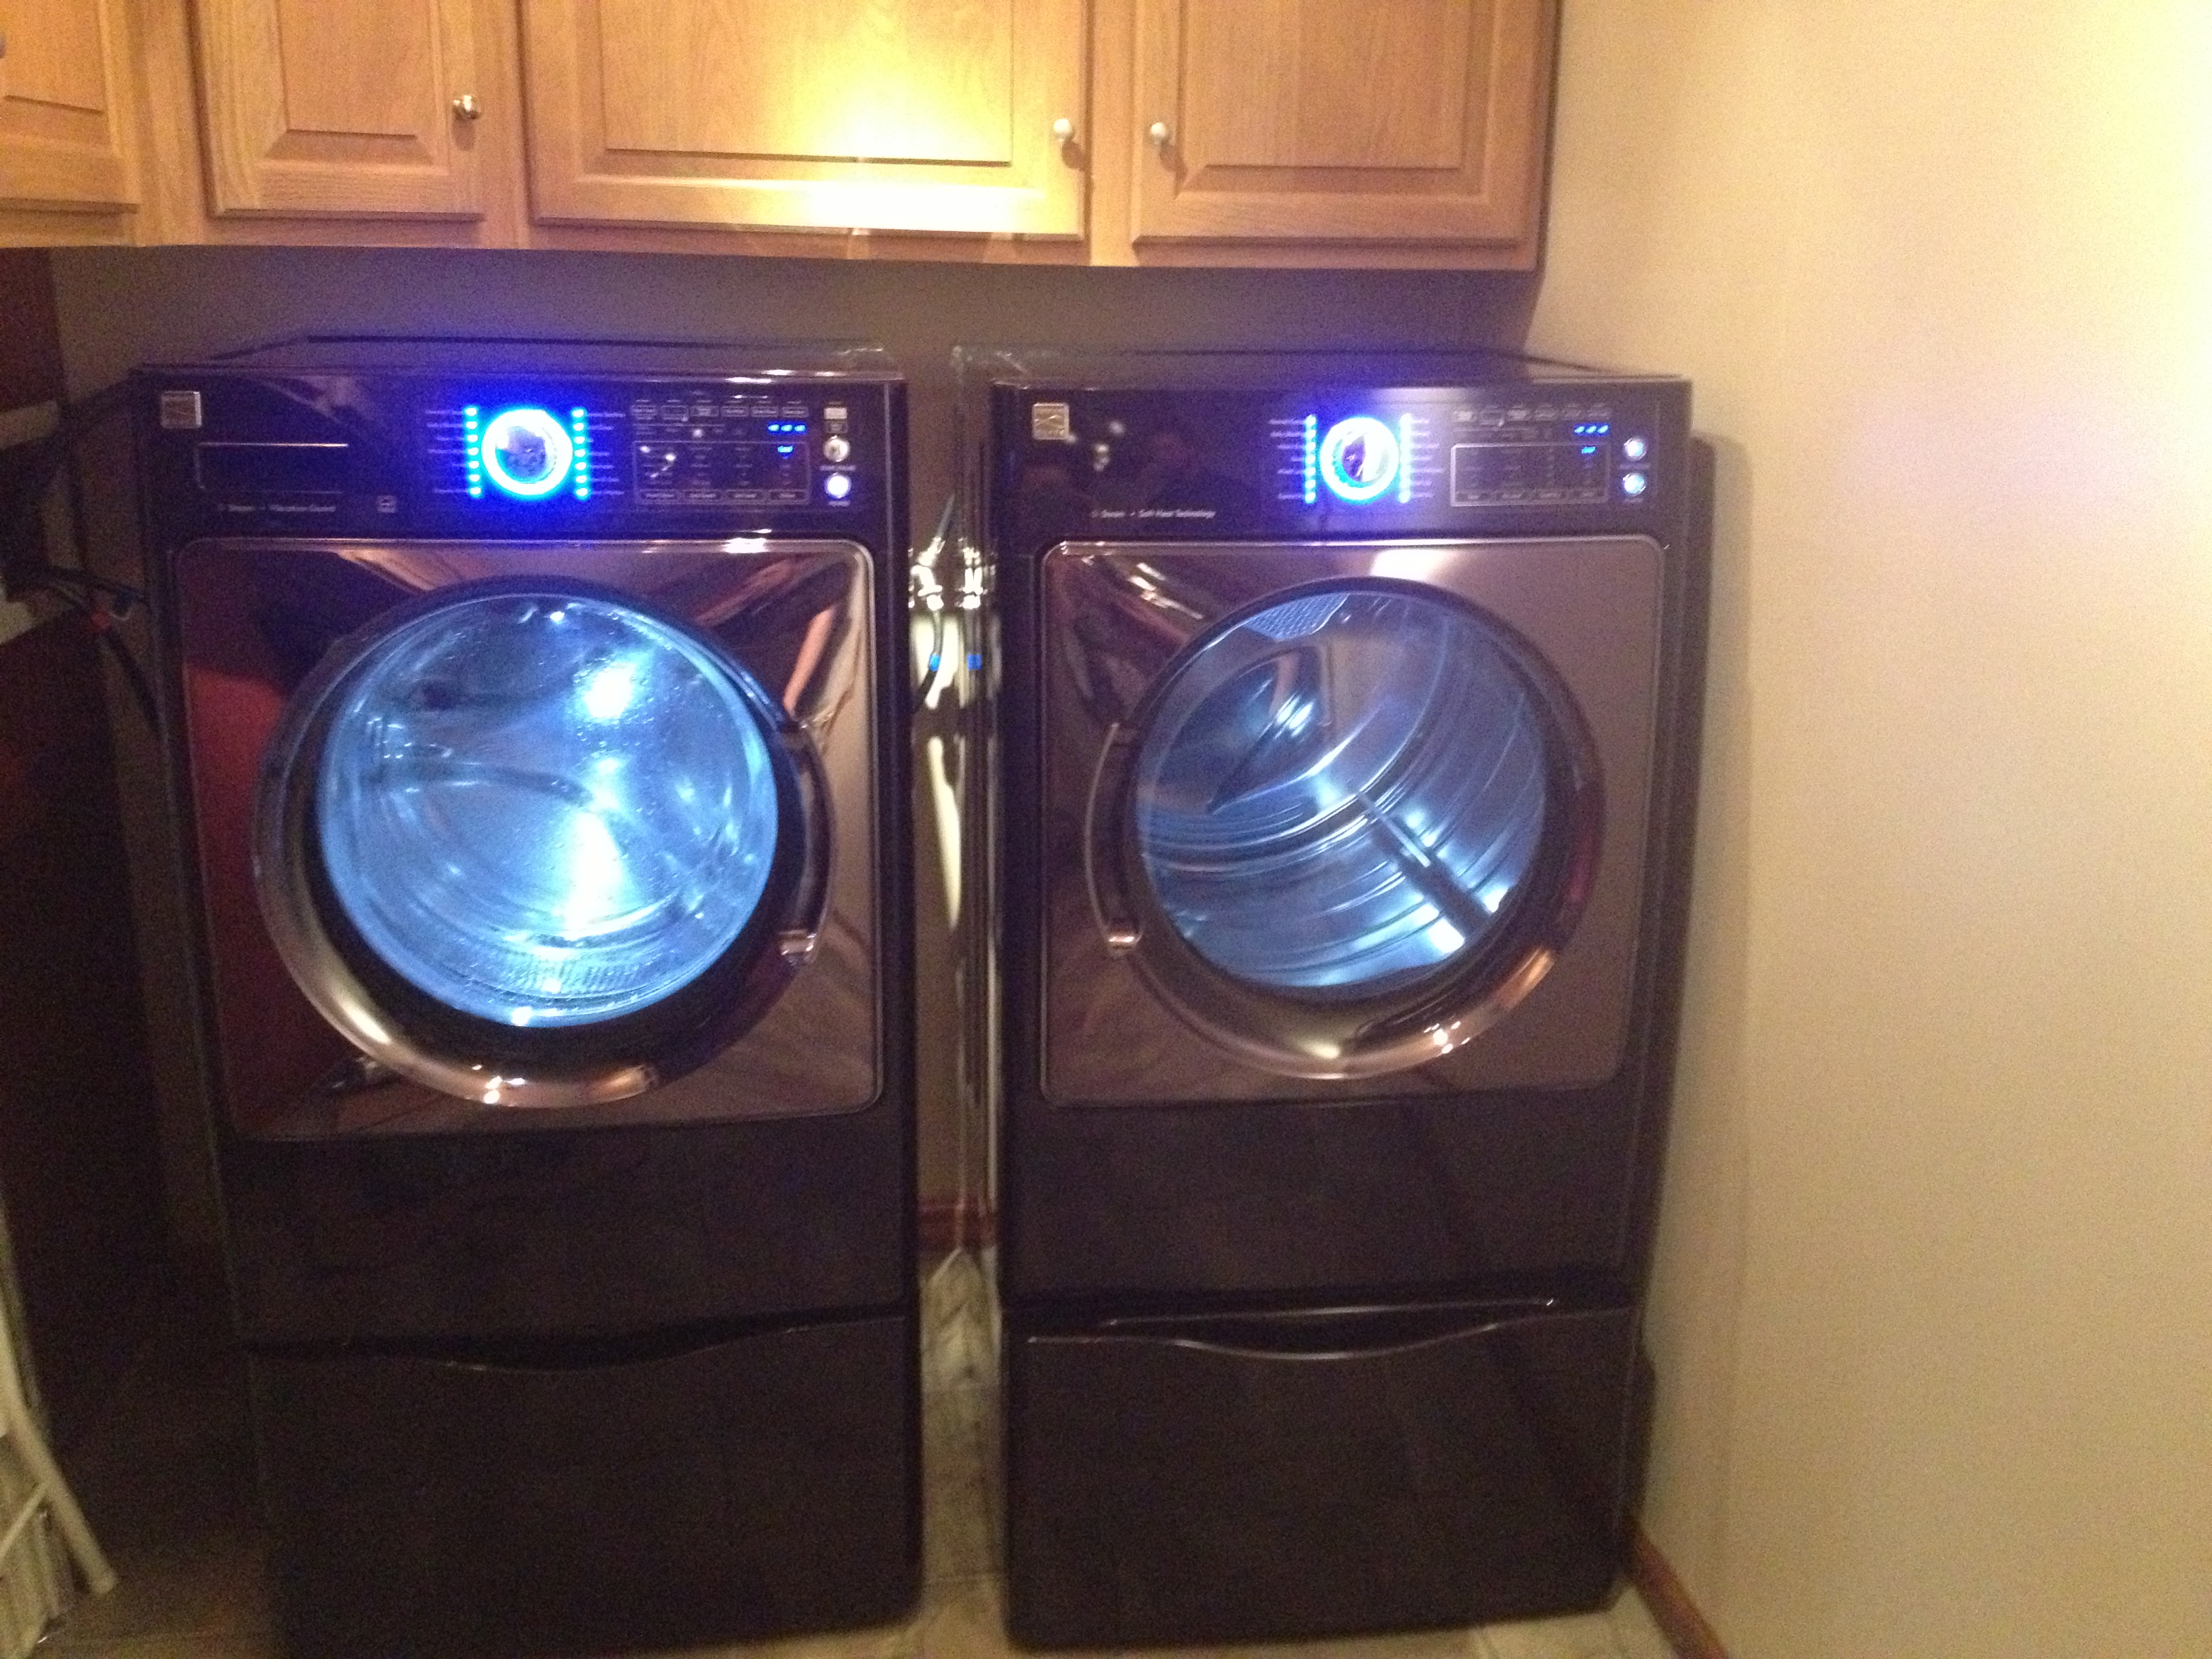 How To Replace A Spark Module In A Gas Range together with Purple Washer And Dryer likewise Old Refrigerator Diagram in addition Water Filter Refrigerator Whirlpool W10295370 1 as well 262096398608. on kenmore elite vacuum